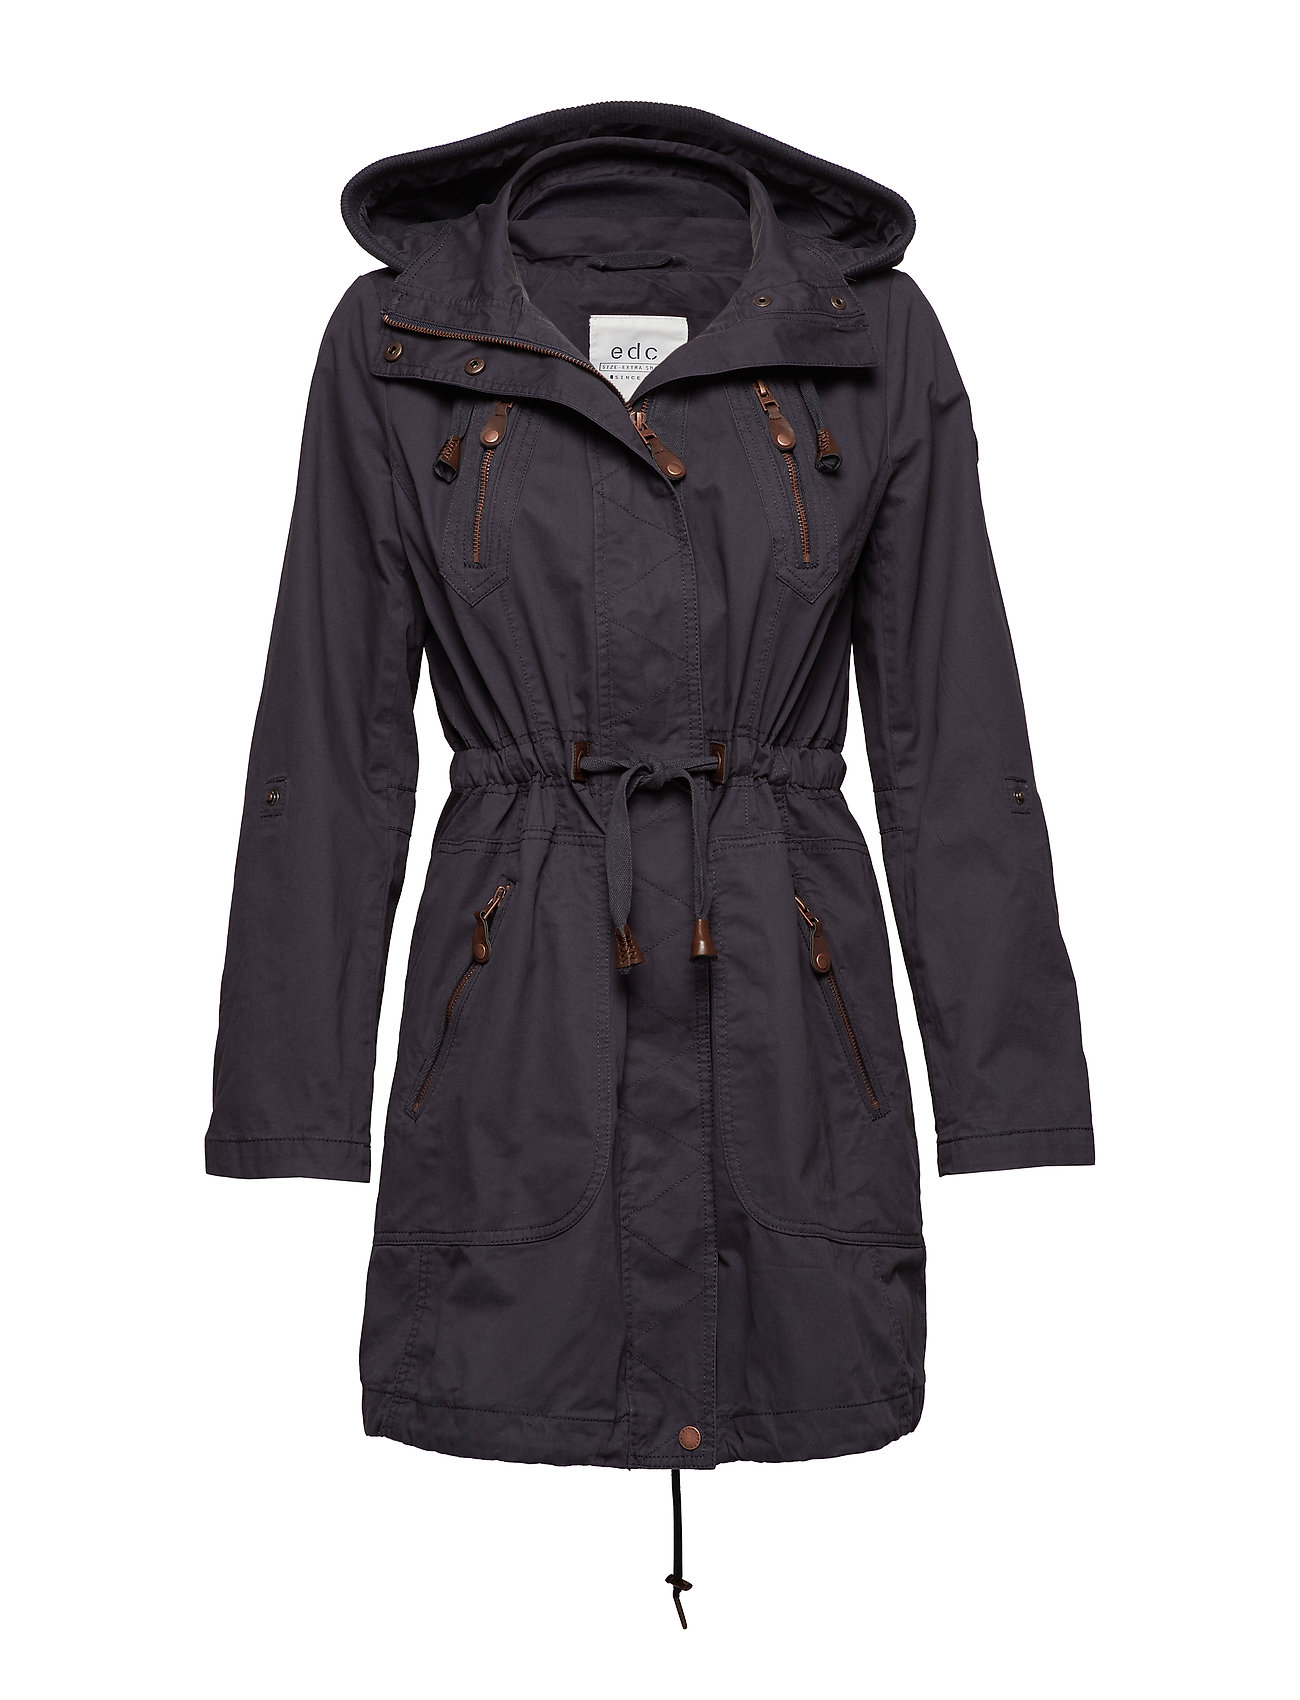 Coats Esprit WovennavyEdc Esprit By By By WovennavyEdc Esprit Coats WovennavyEdc Coats 8nO0PkXw